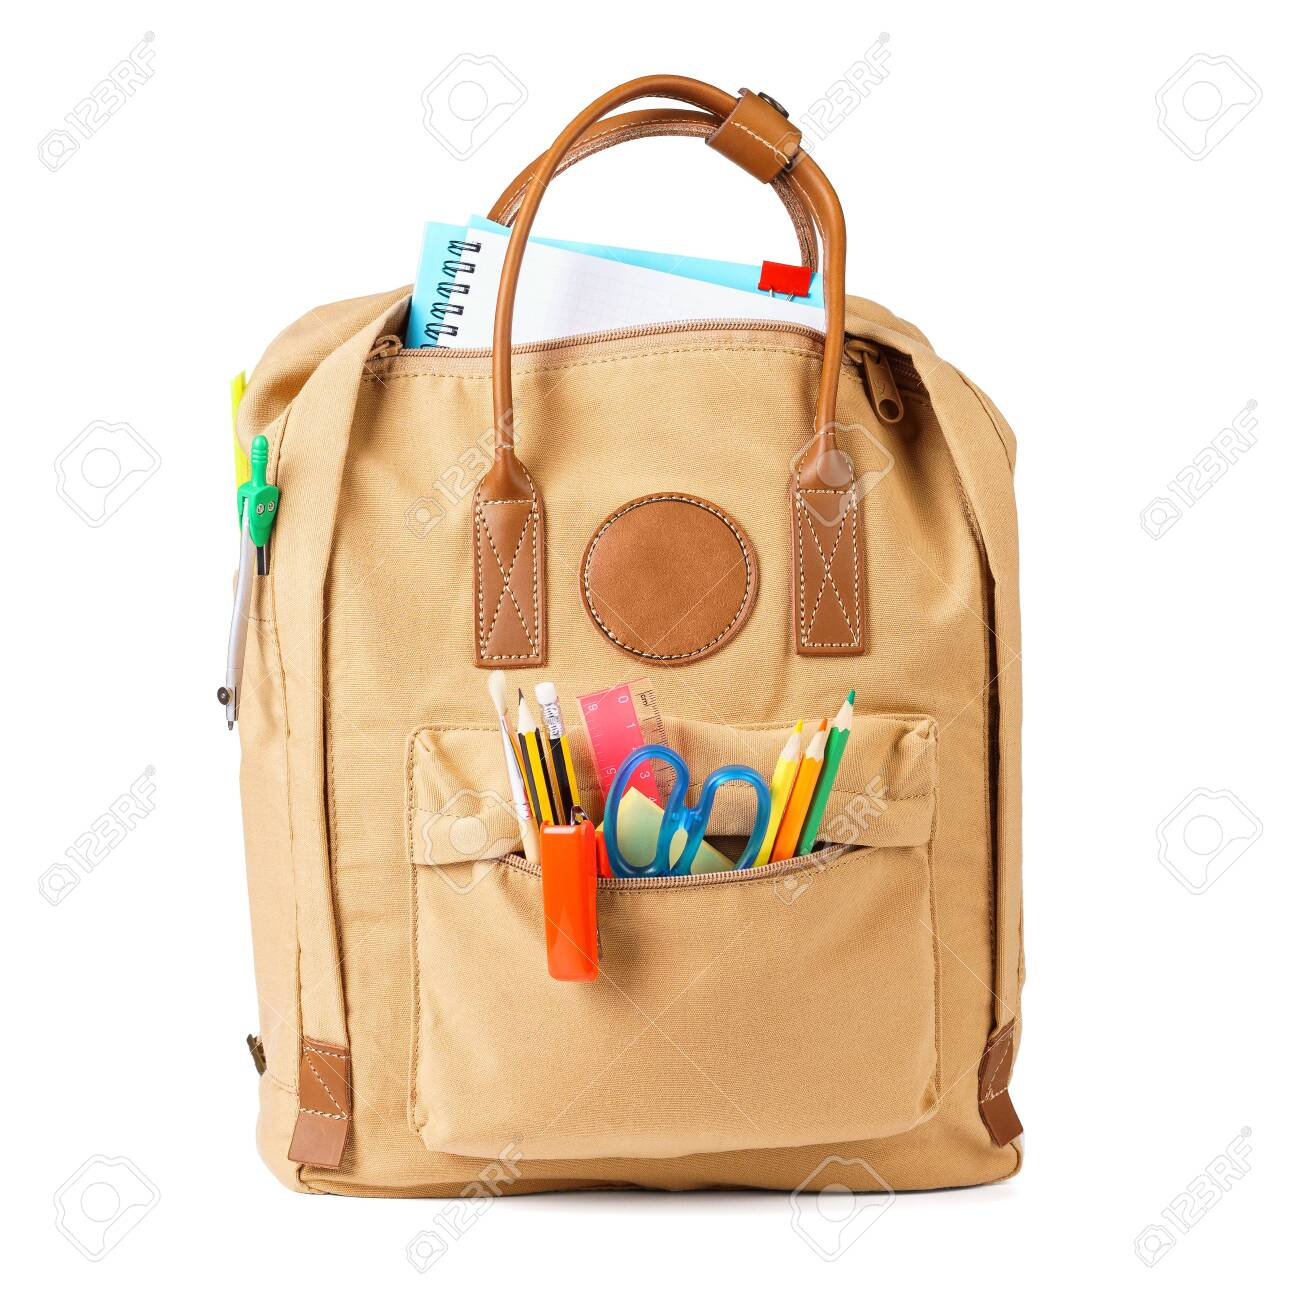 Brown school backpack full of various colorful stationery and supplies. Isolated on white background. - 126017881